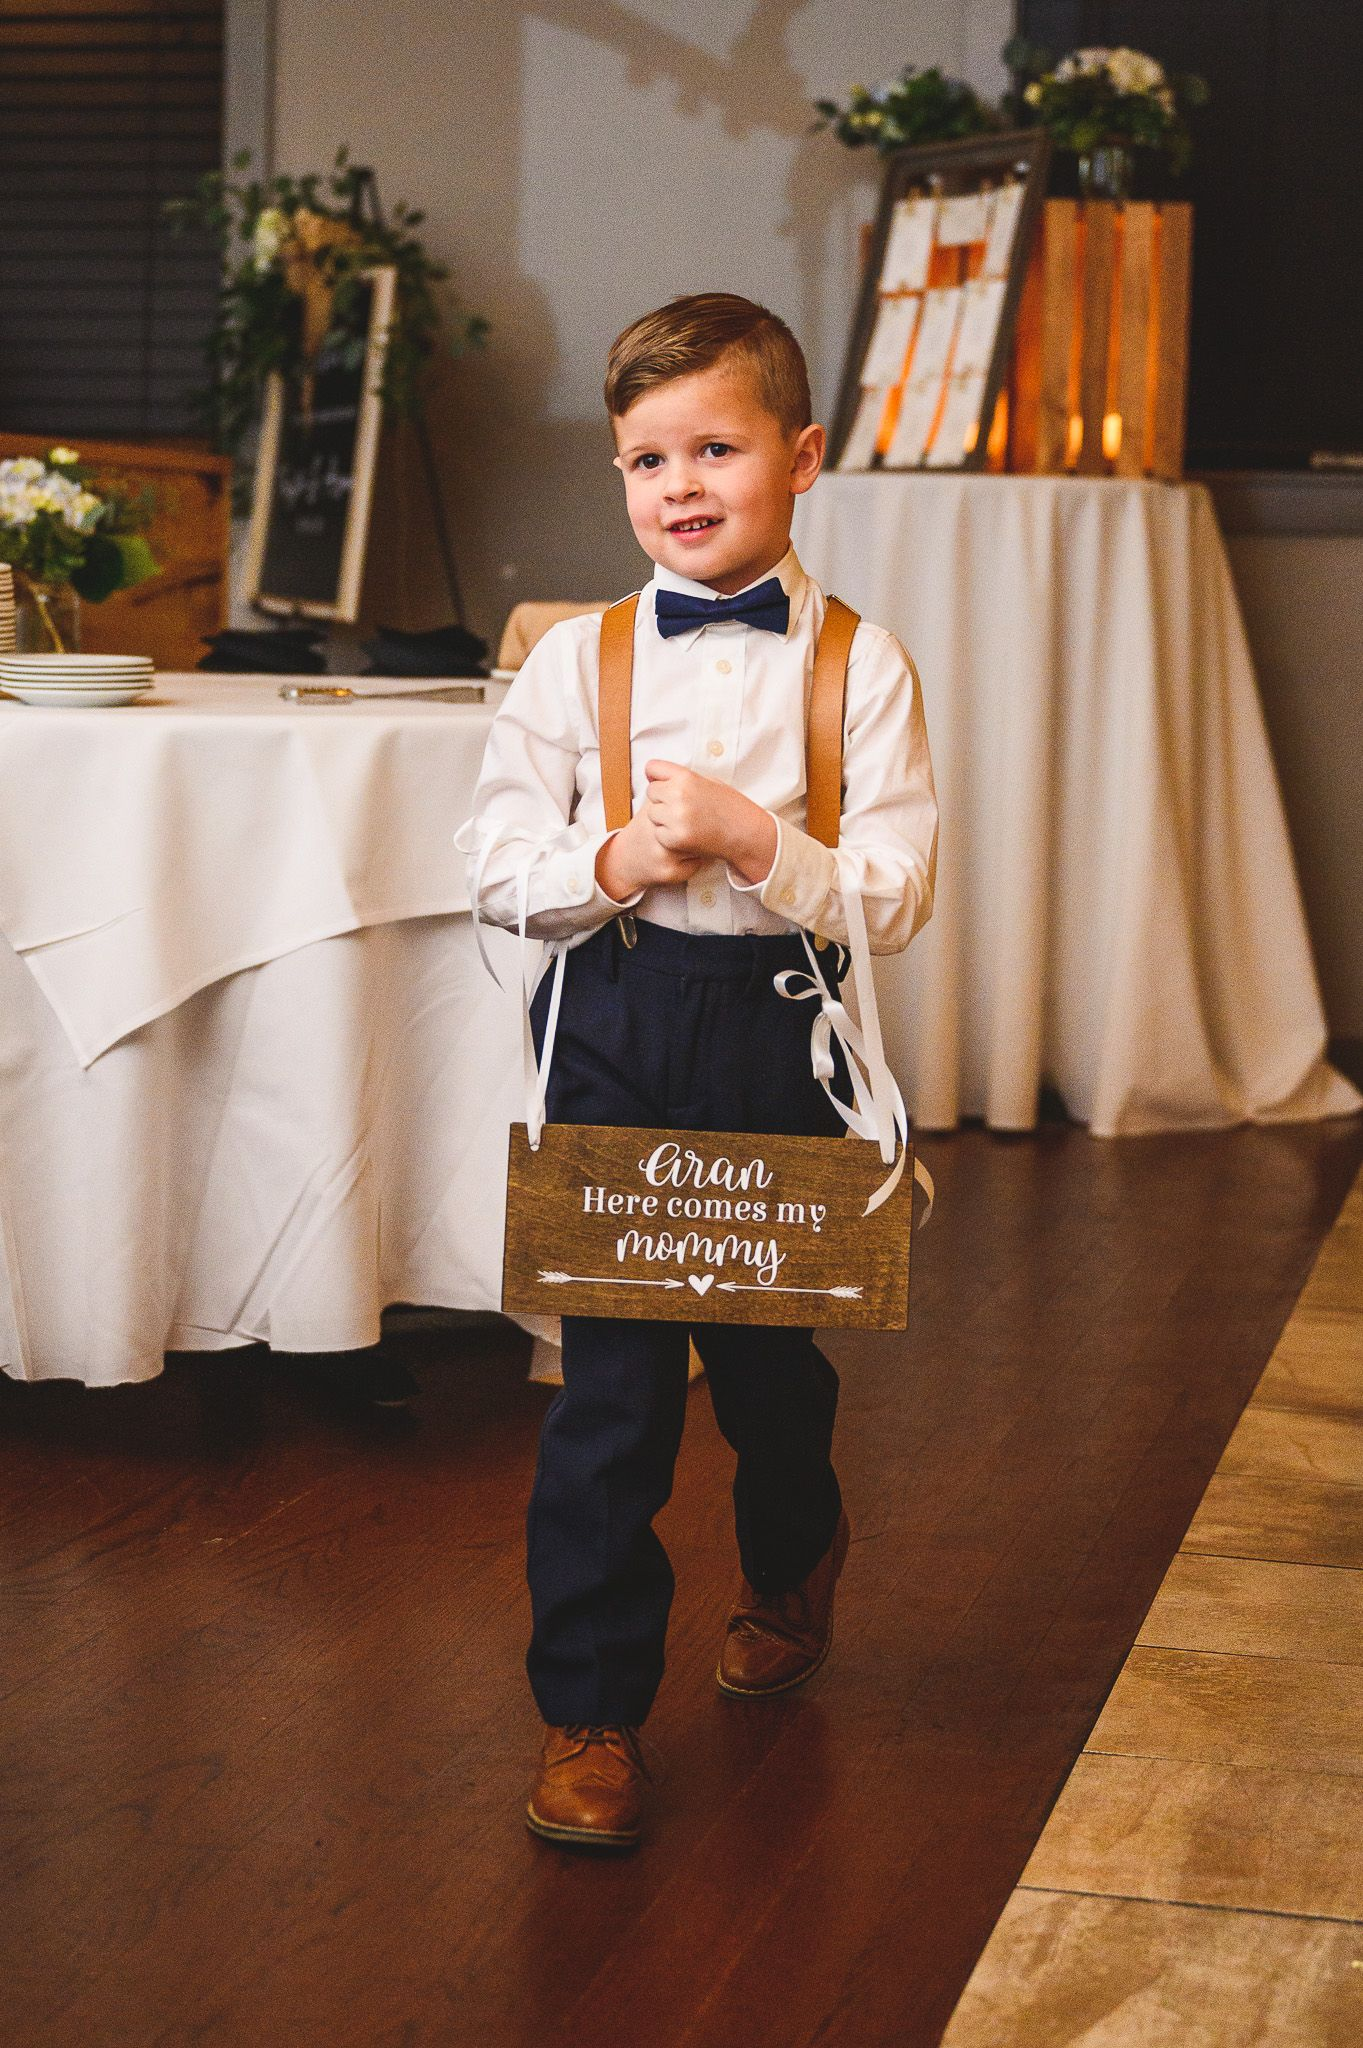 ring bearer walking down with sign during wedding ceremony